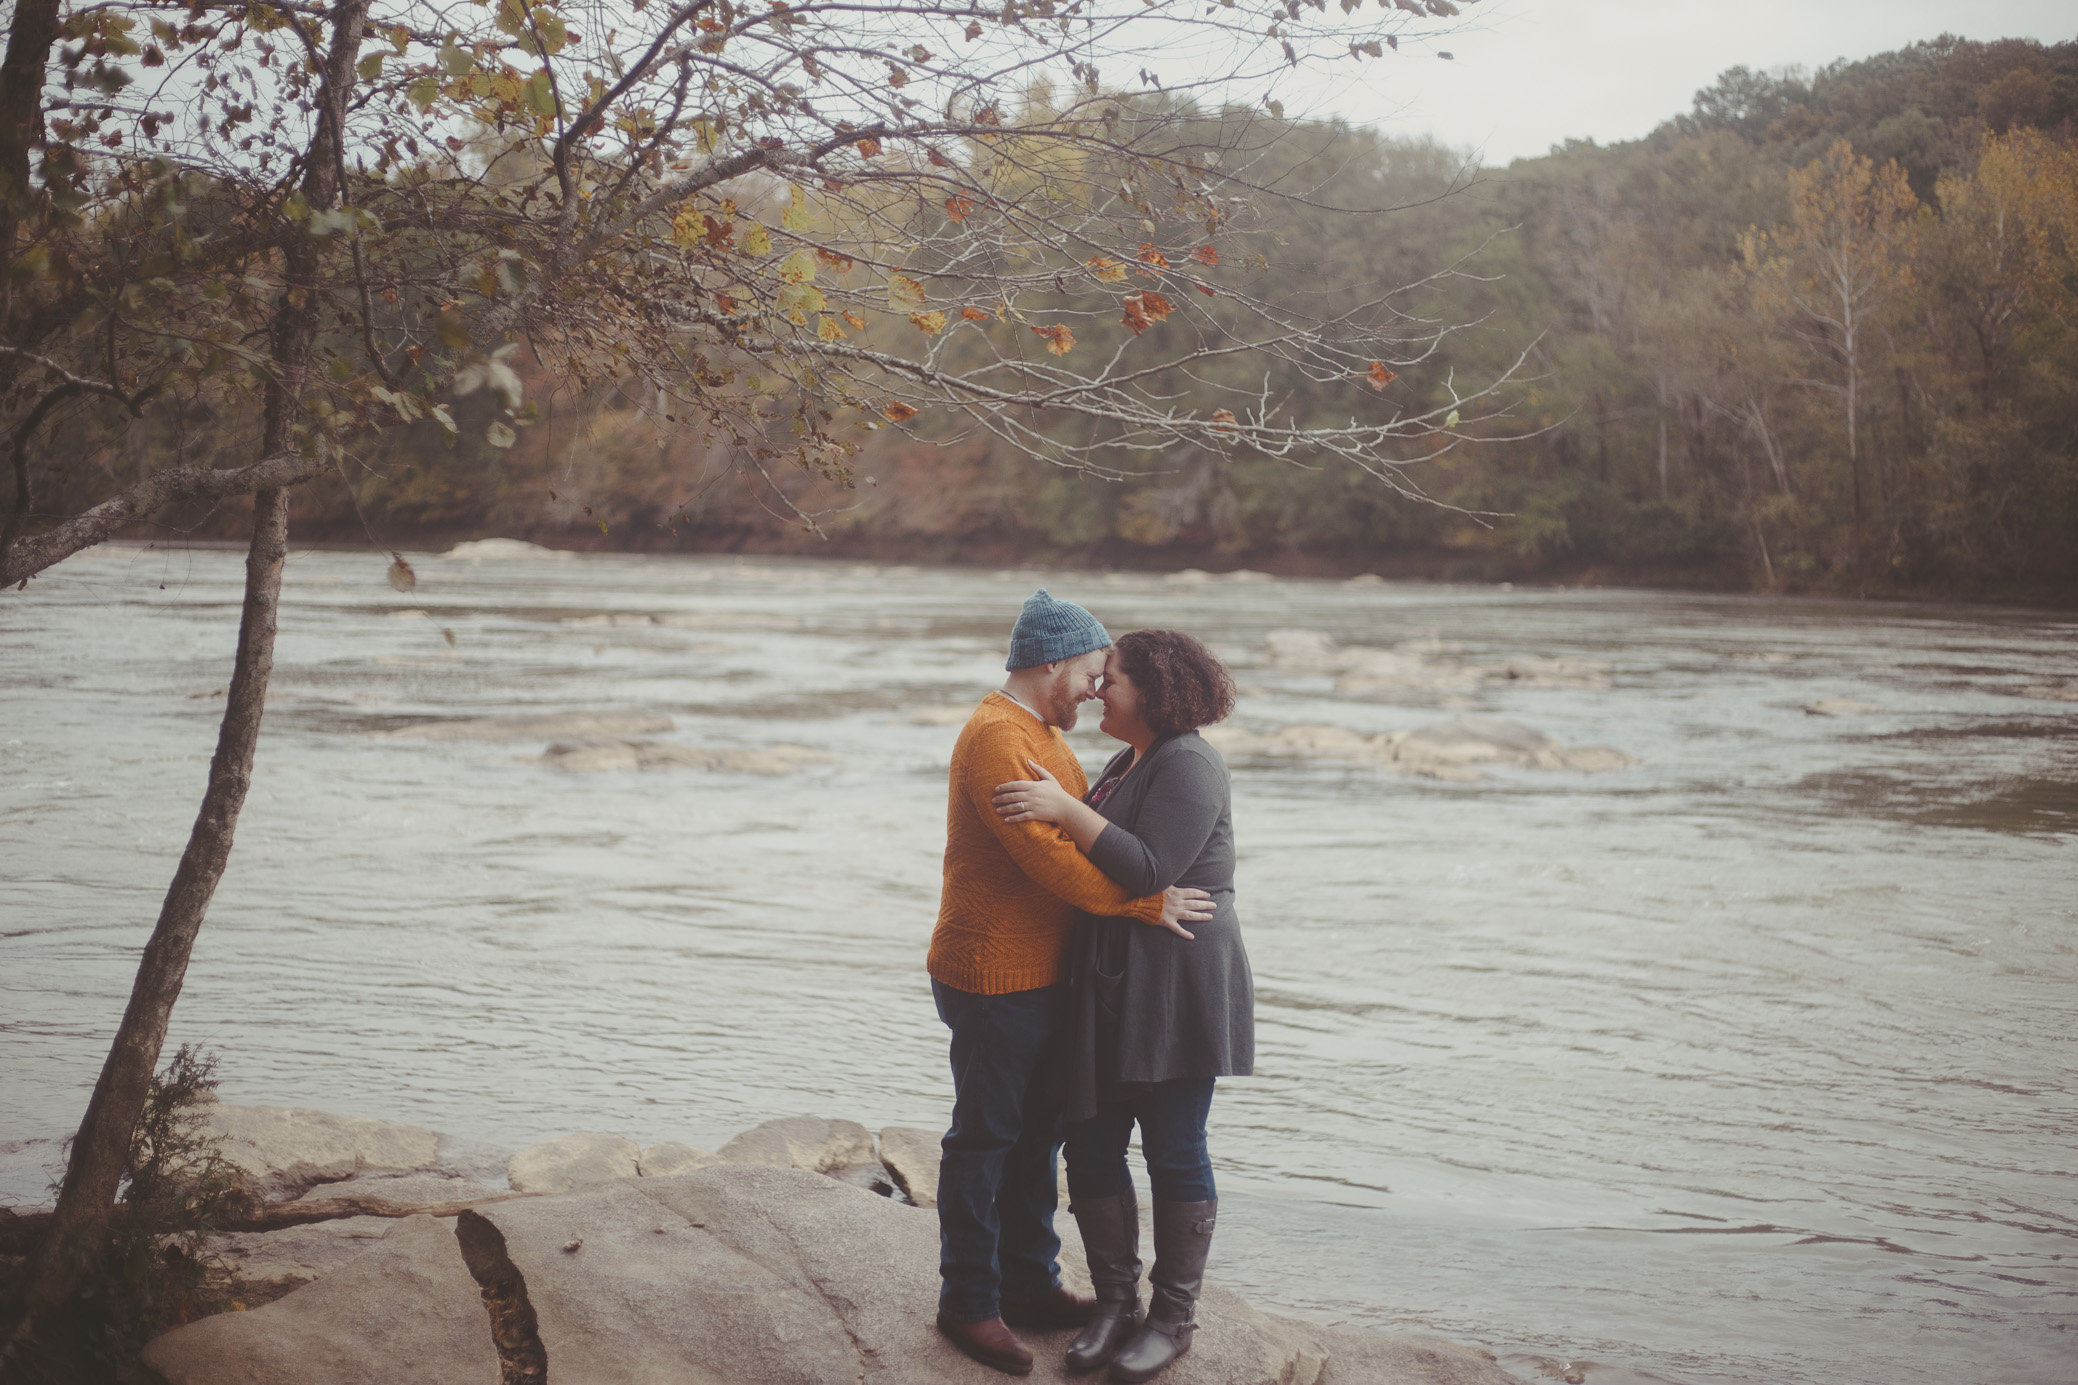 Atlanta, Georgia engagement photography at the Chattahoochee River National Recreation Area by David A. Smith of DSmithImages Wedding Photography, Portraits, and Events in the Birmingham, Alabama area.